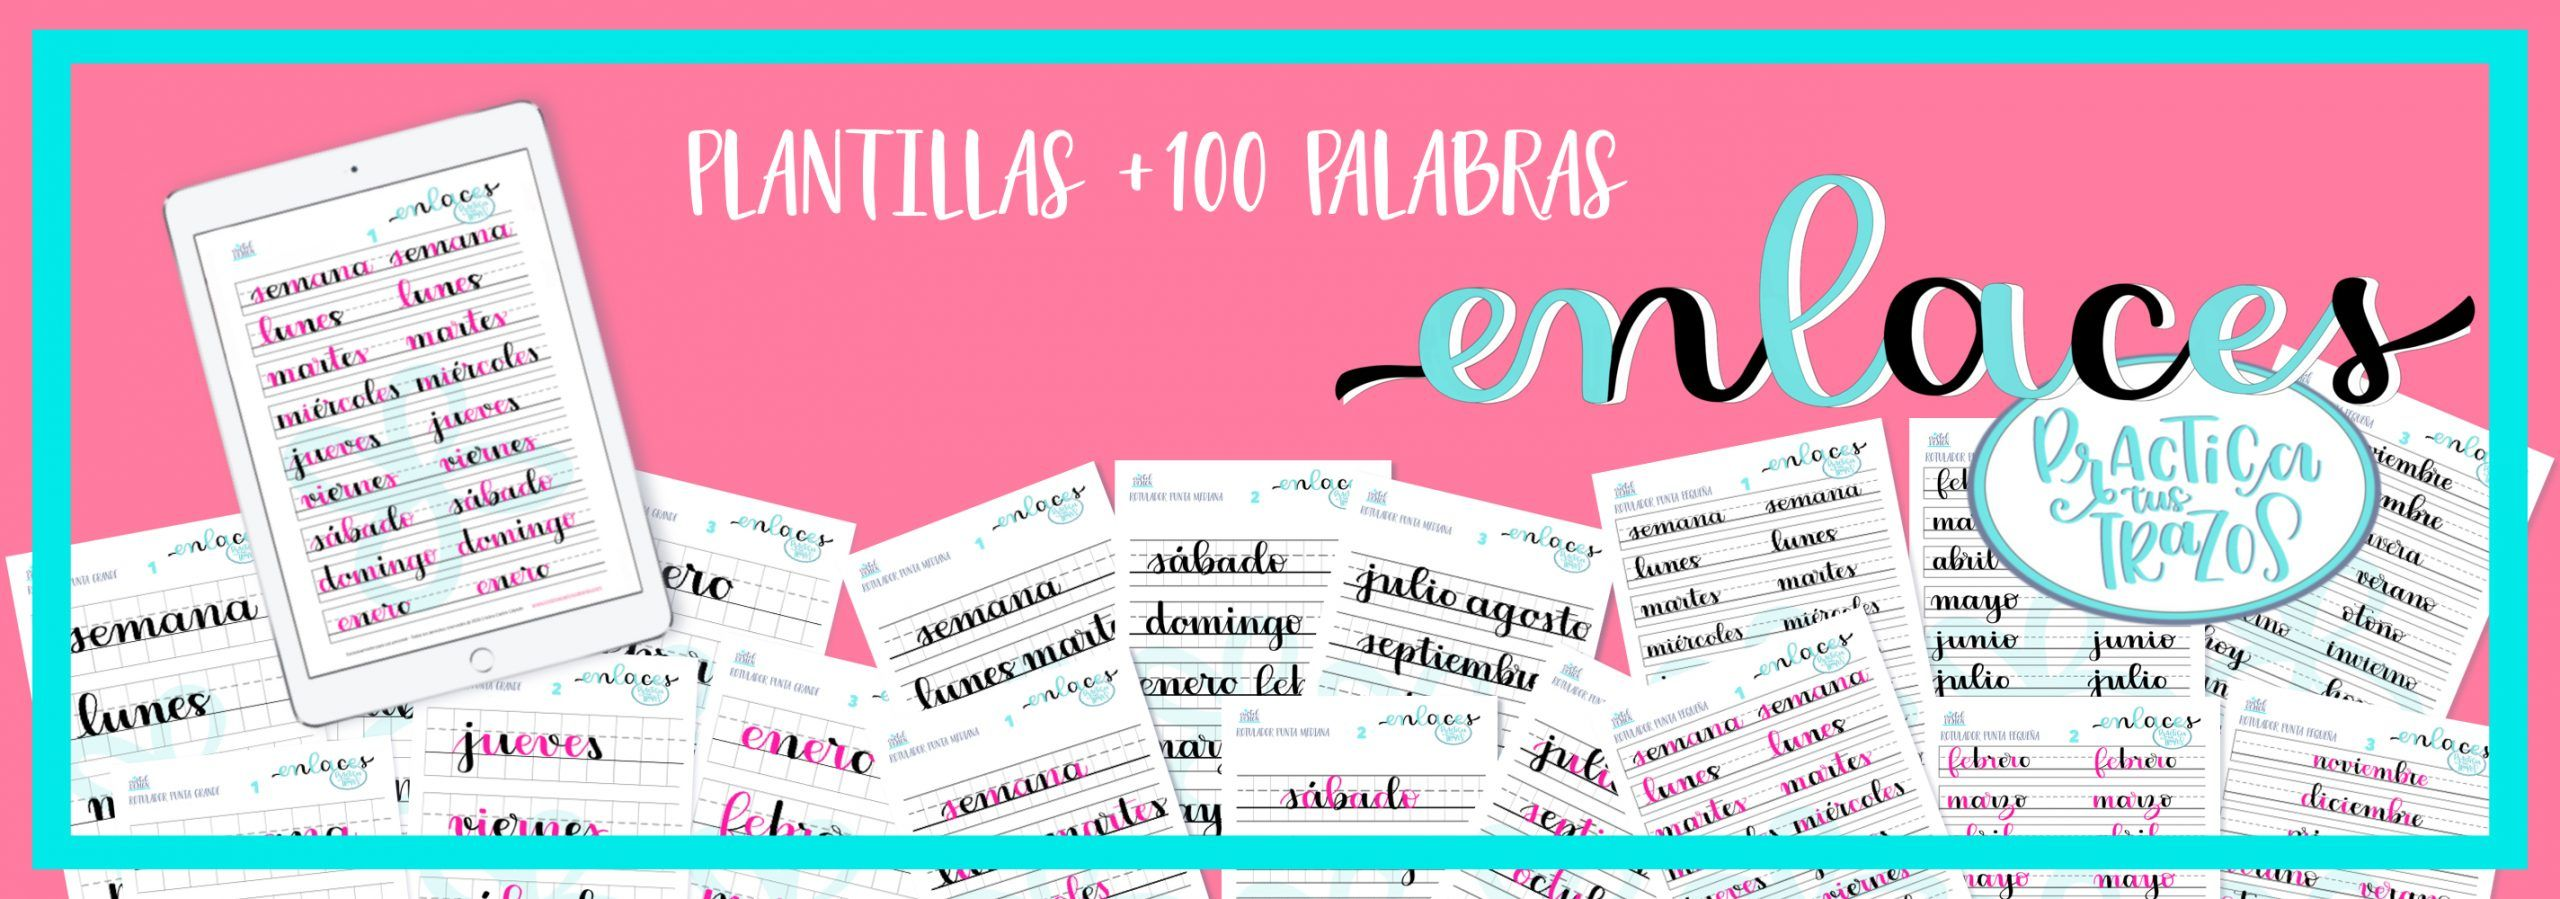 plantillas-enlaces-brush-lettering-cristel-design